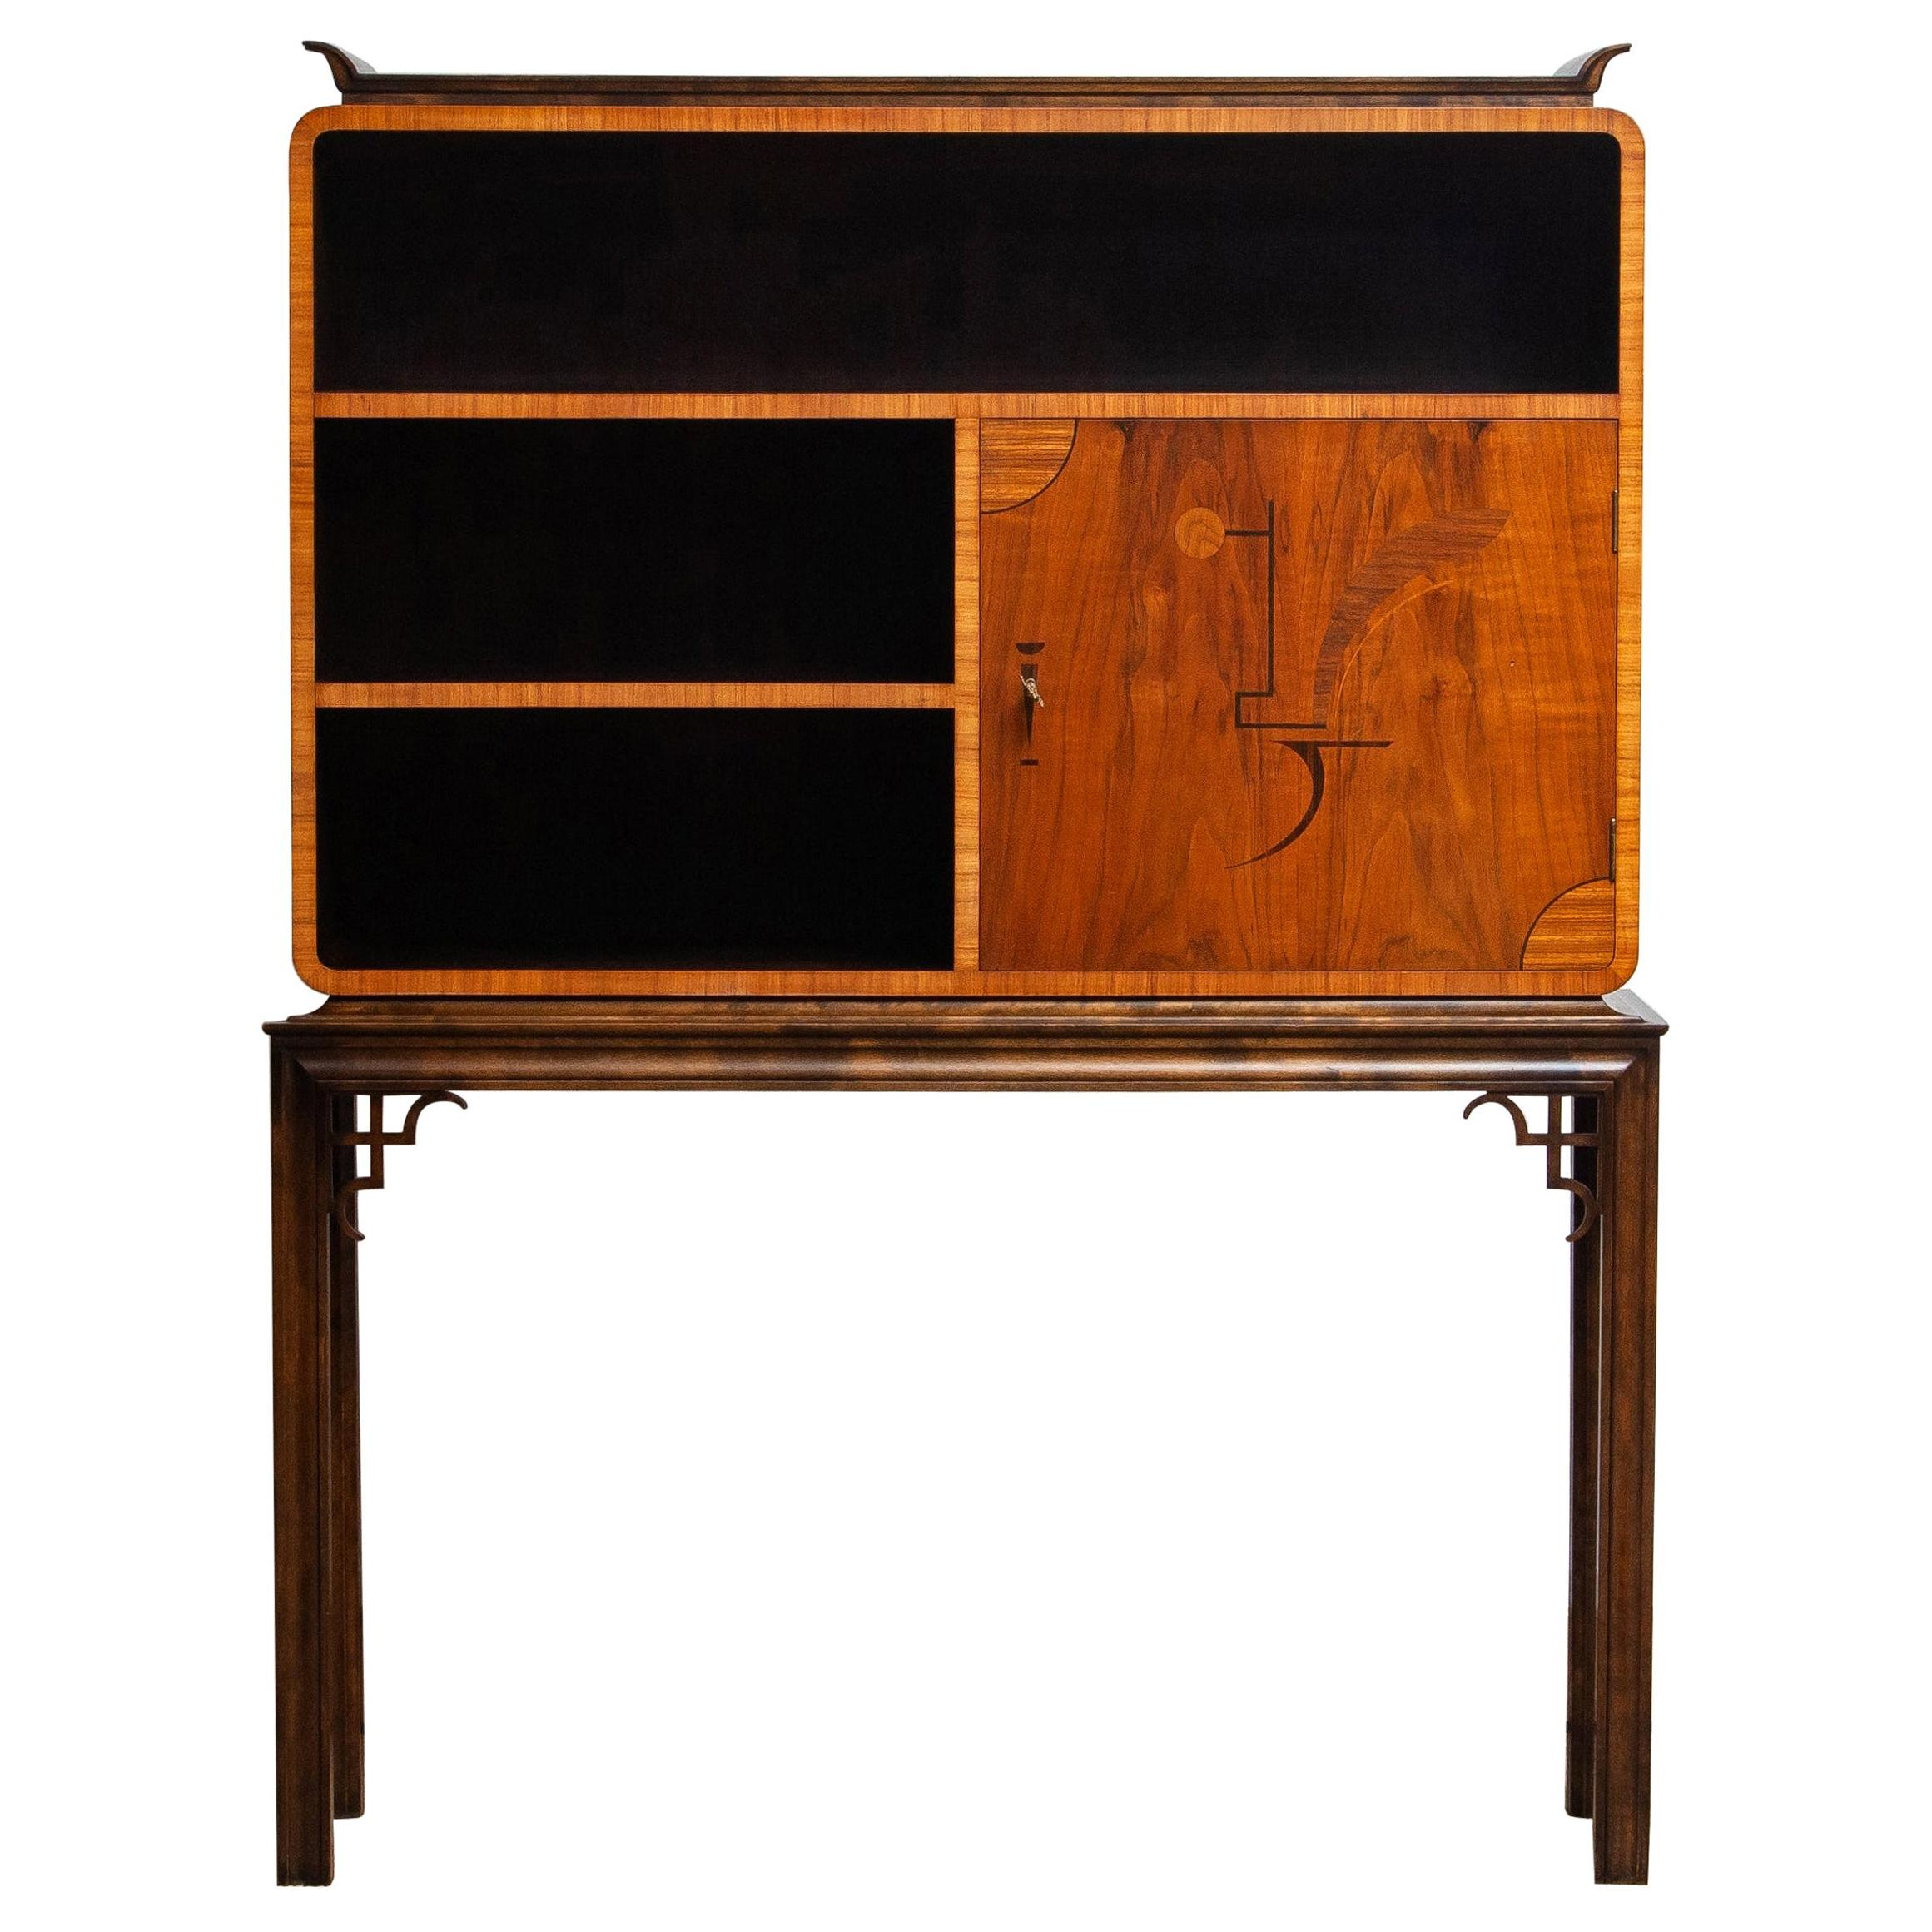 1930s, Art Deco Dry Bar or Display Cabinet for Good Prosperity, Made in Sweden